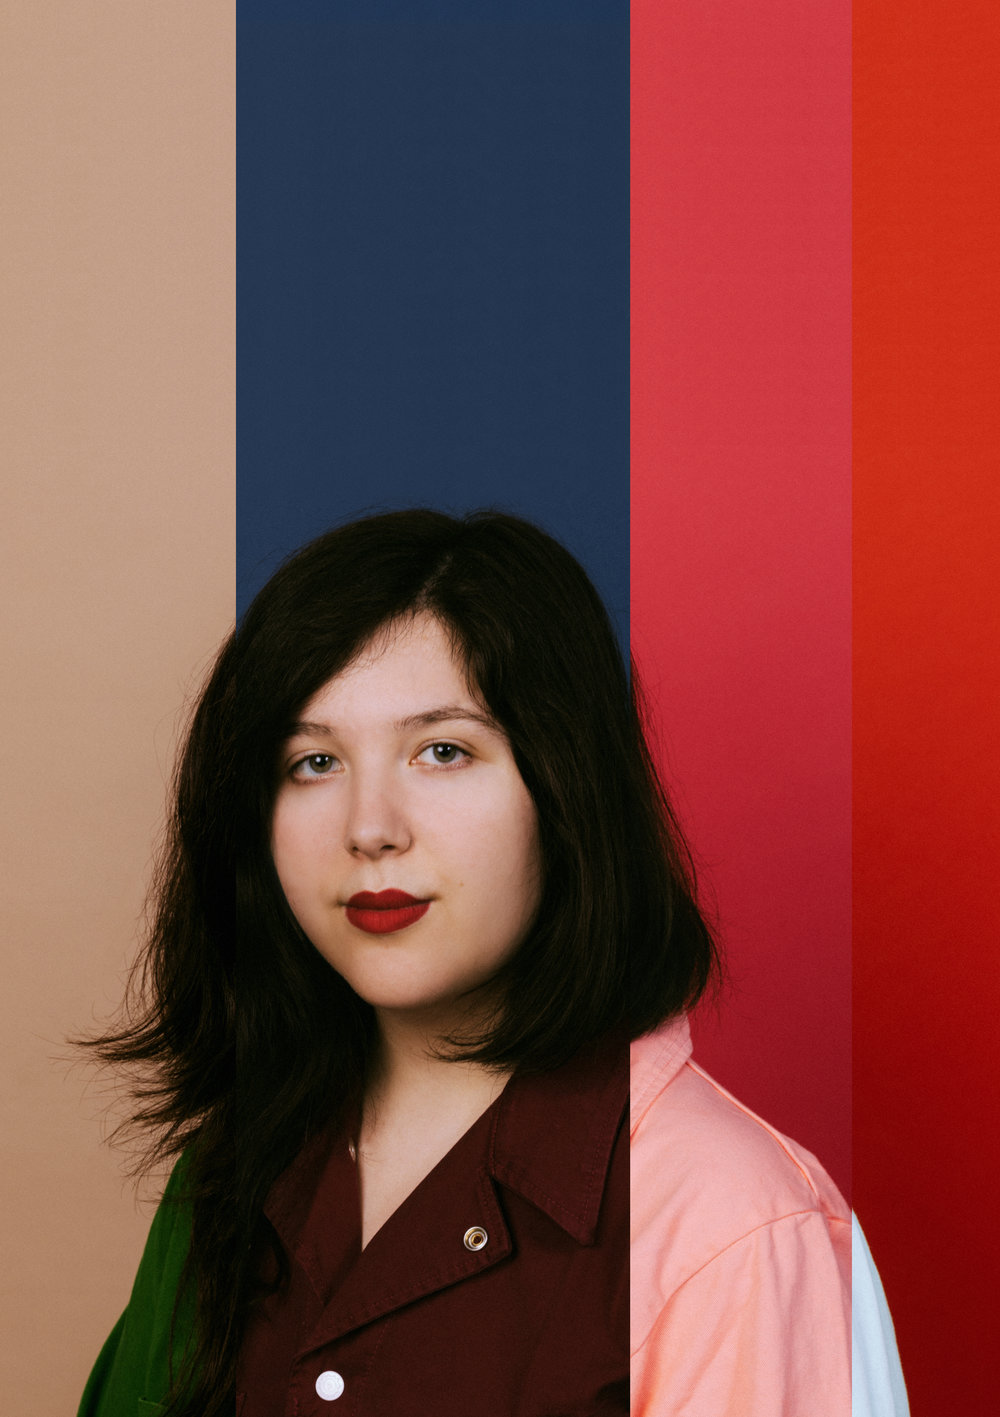 lucydacus